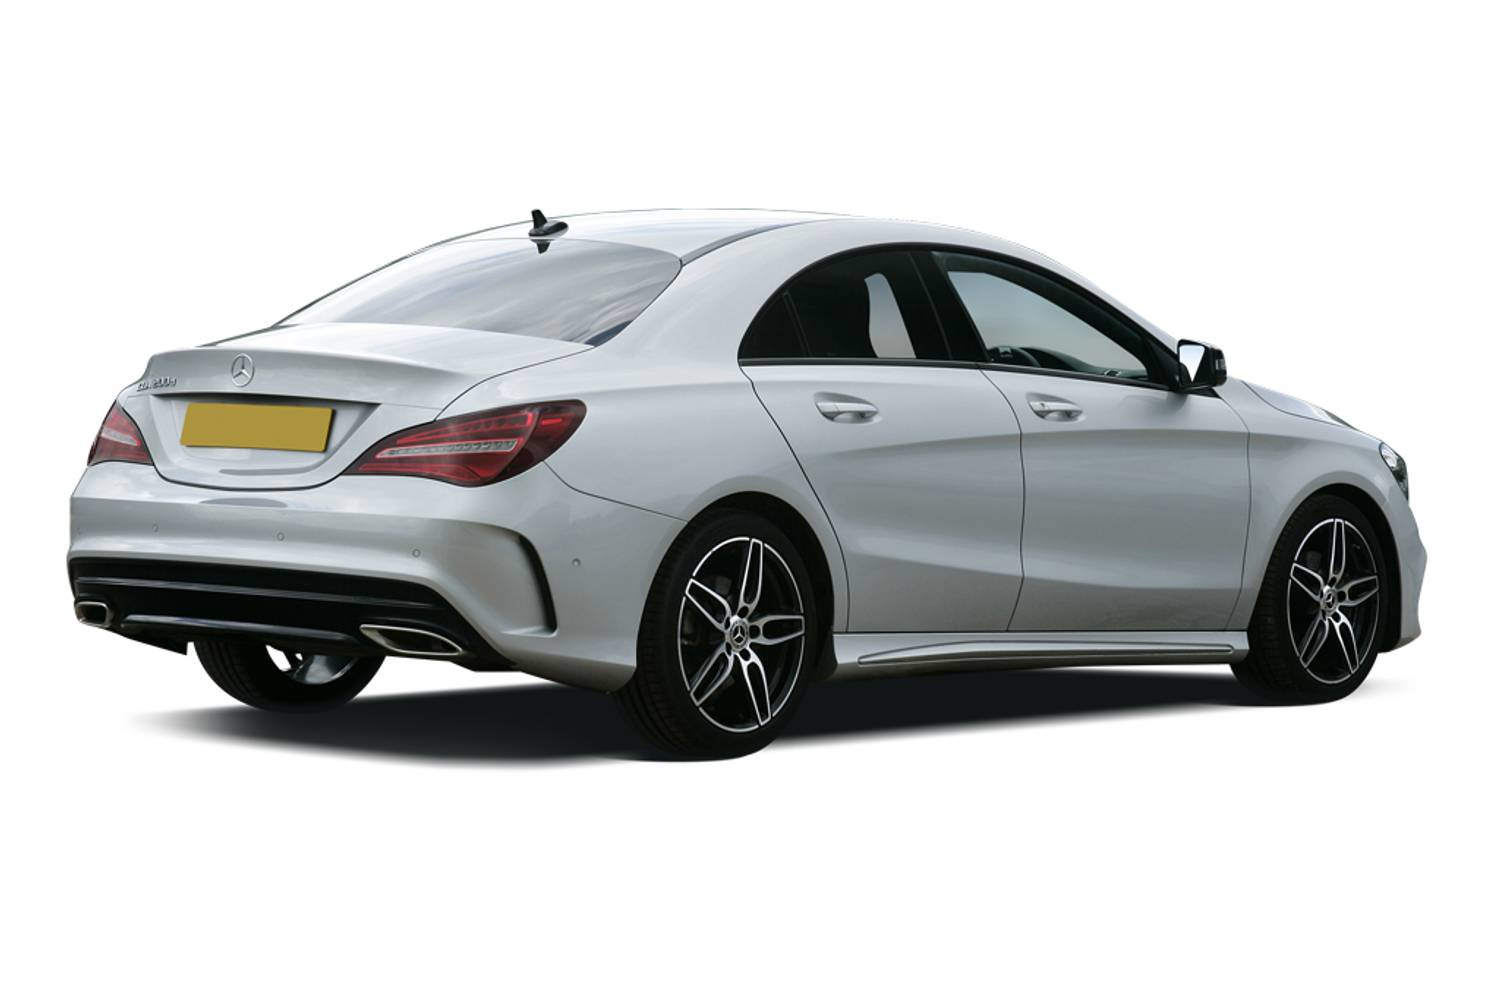 new mercedes benz cla class coupe cla 200 amg line night edition 4 door 2018 for sale